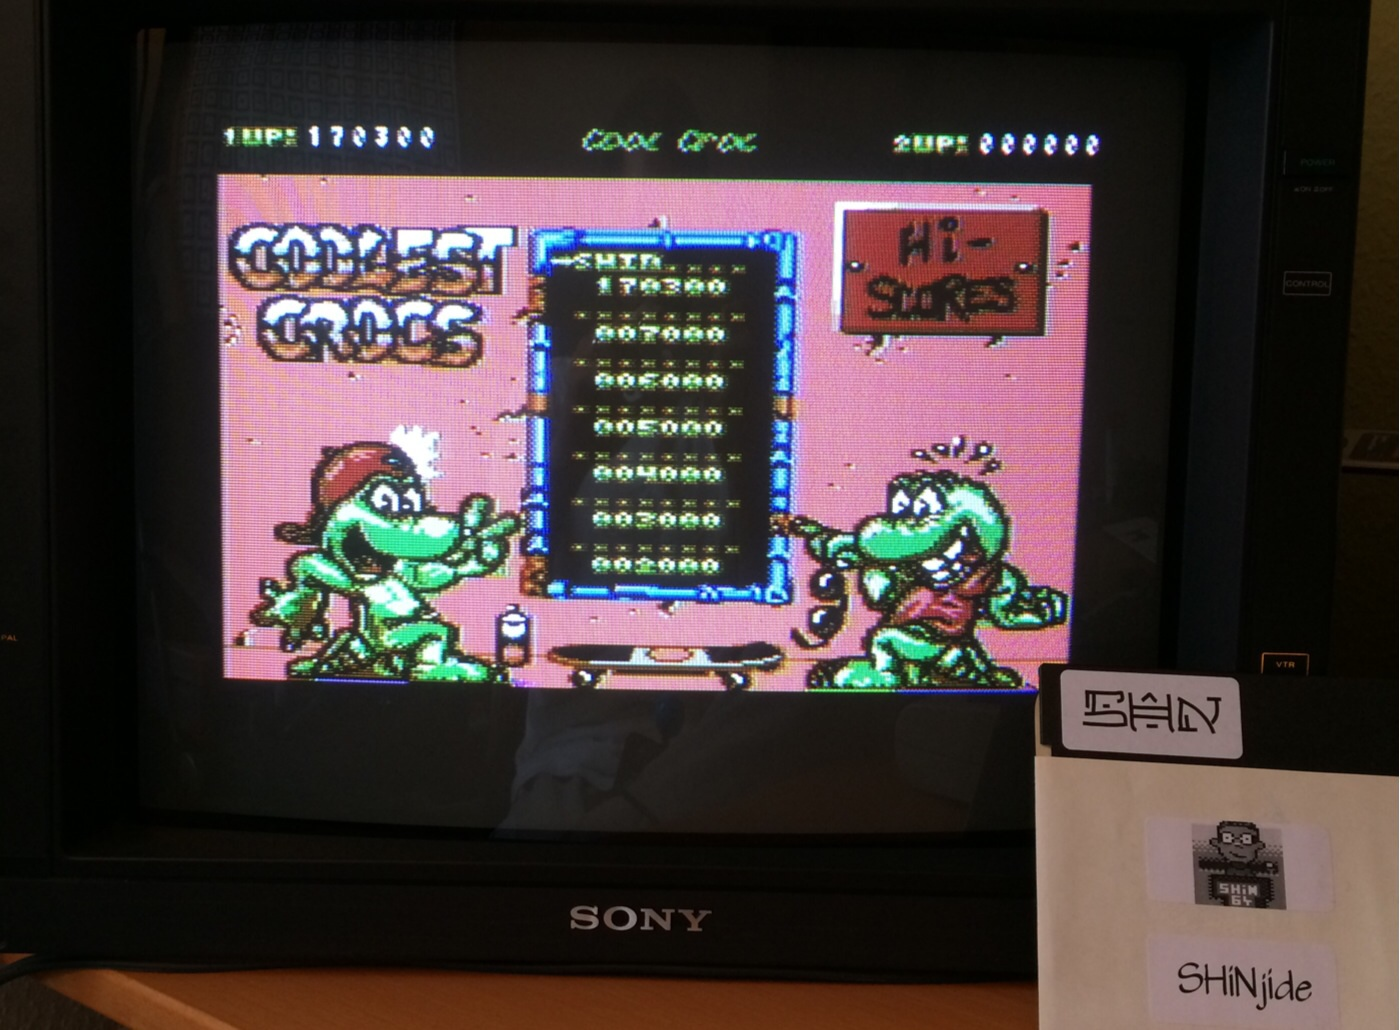 SHiNjide: Cool Croc Twins (Commodore 64) 170,300 points on 2014-09-13 04:34:47